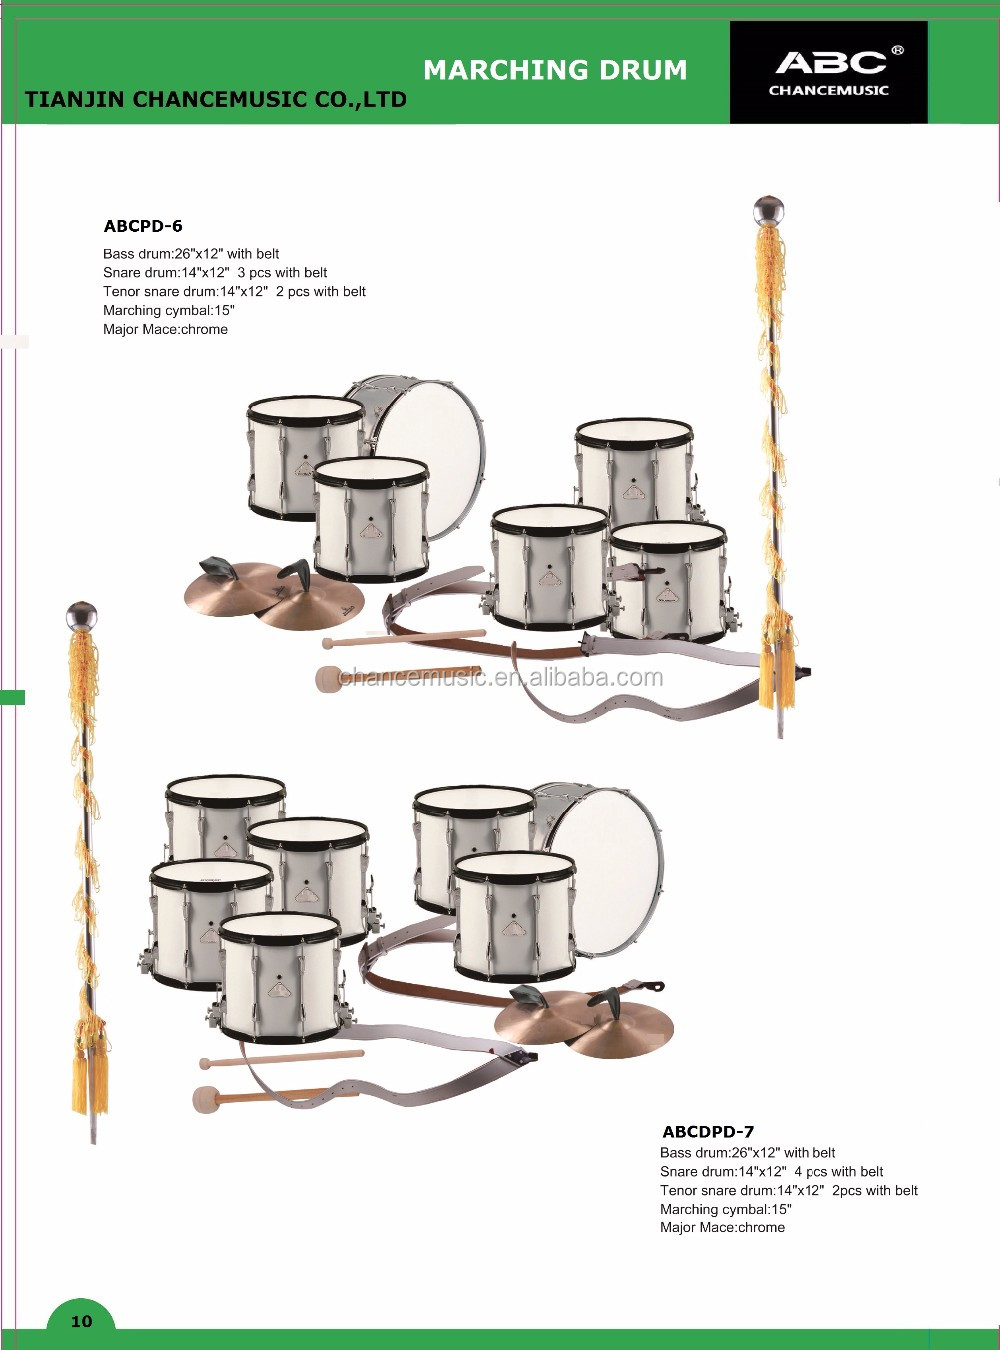 Wholesale Marching Drum Abcdpd 7 Buy Cheap Drumsmarching Snare Diagram Title Goes Here